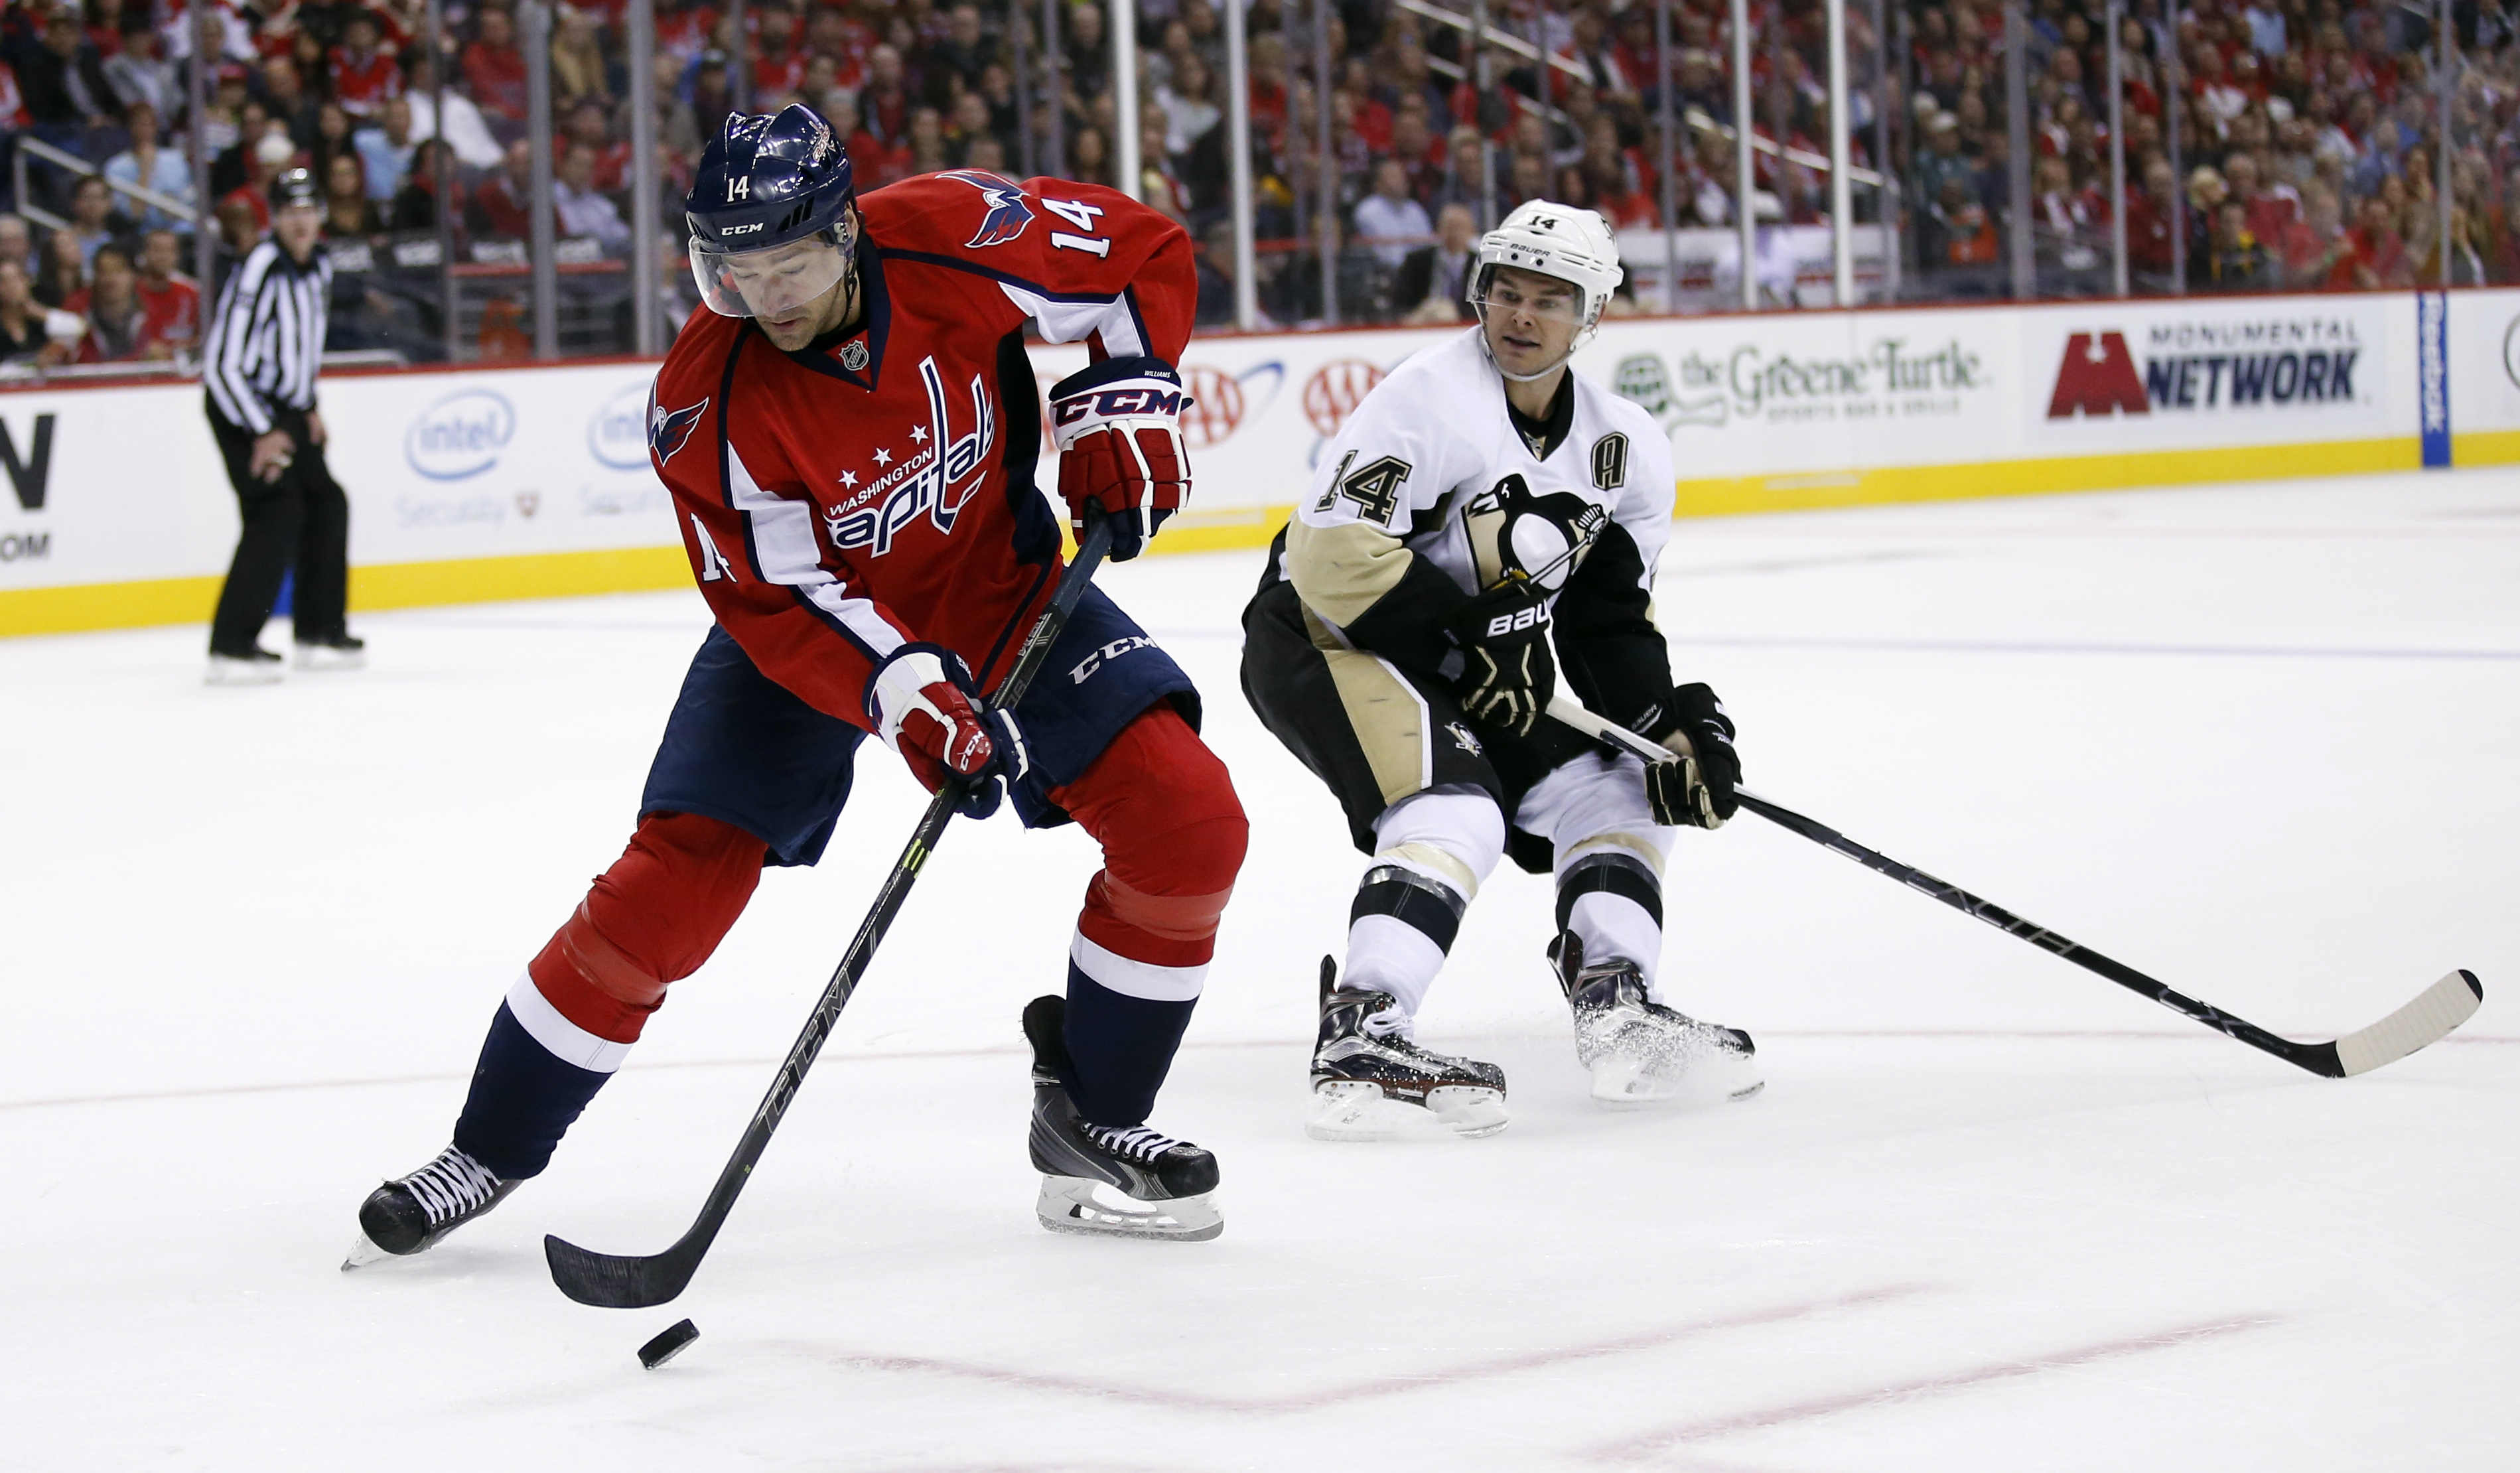 Washington Capitals right wing Justin Williams (14) skates with the puck as Pittsburgh Penguins left wing Chris Kunitz (14) defends in the second period of an NHL hockey game, Wednesday, Oct. 28, 2015, in Washington. (AP Photo/Alex Brandon)